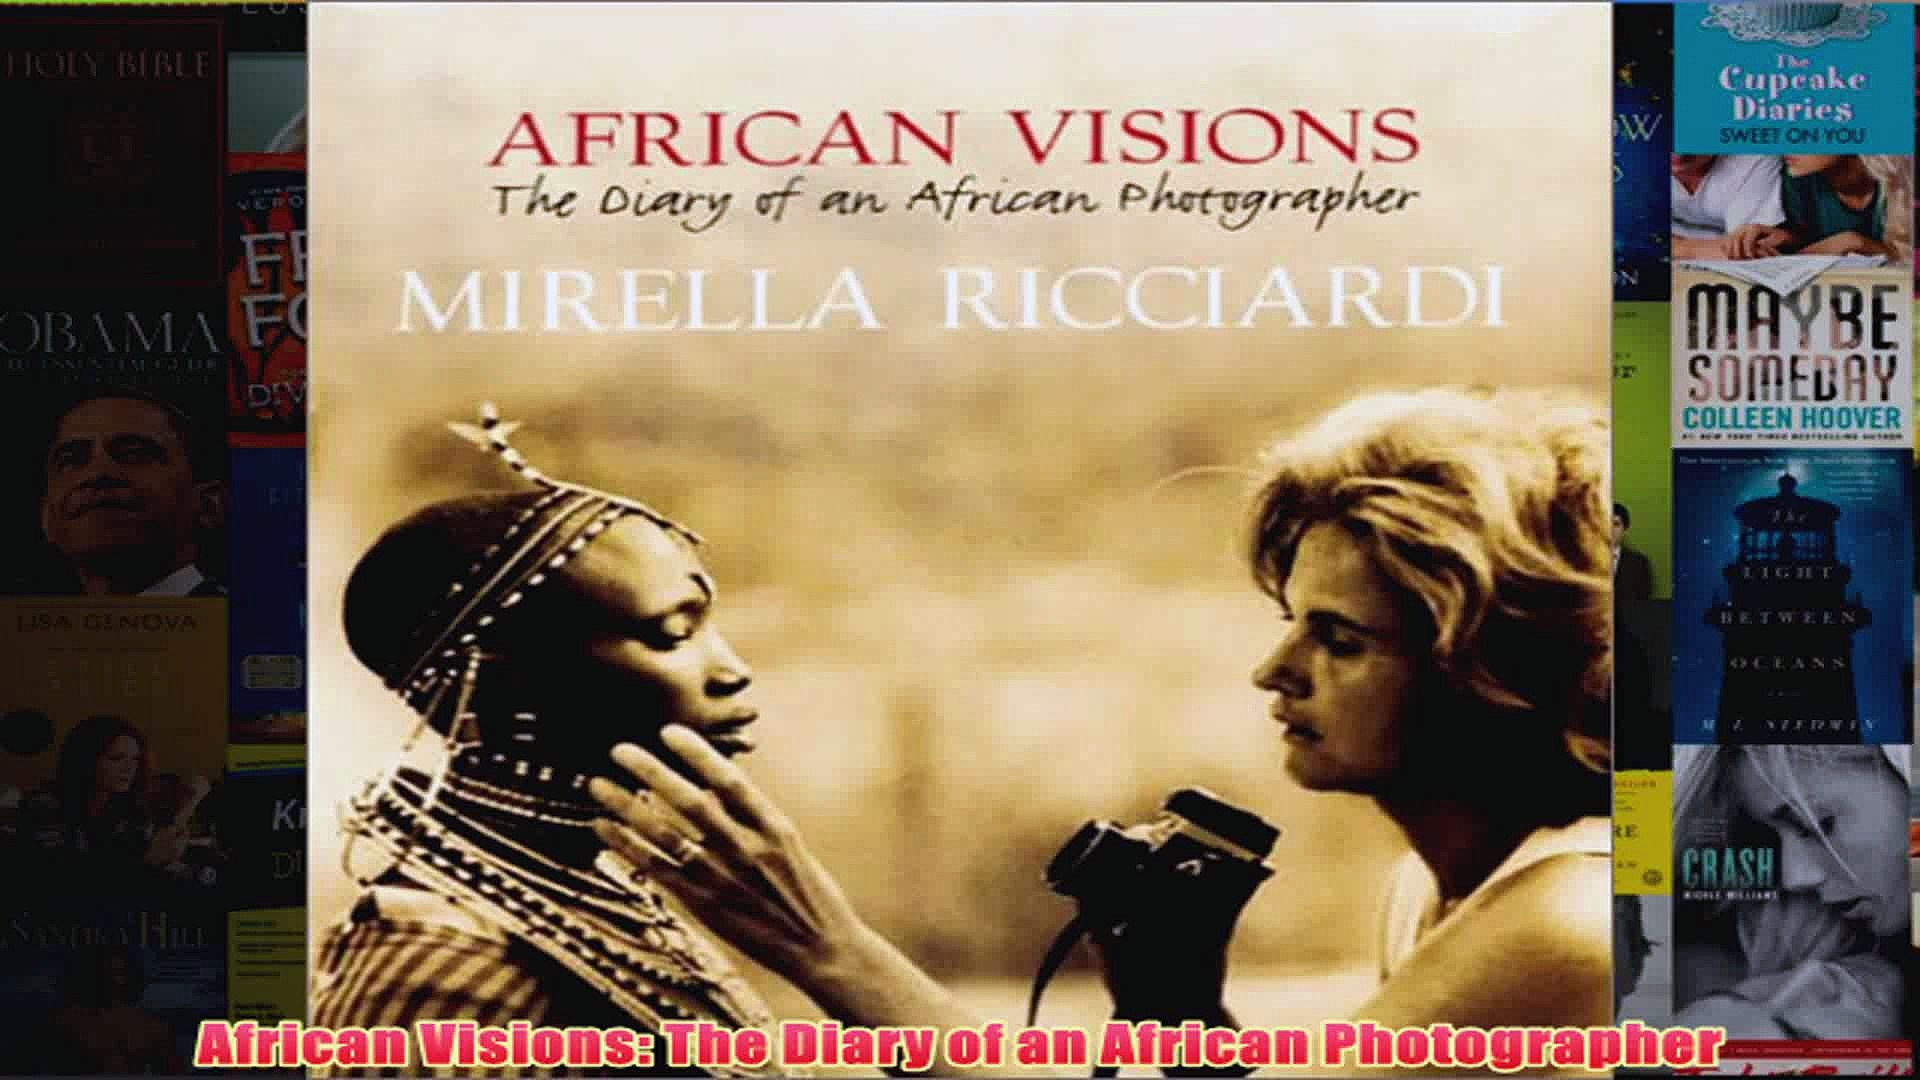 African Visions The Diary of an African Photographer